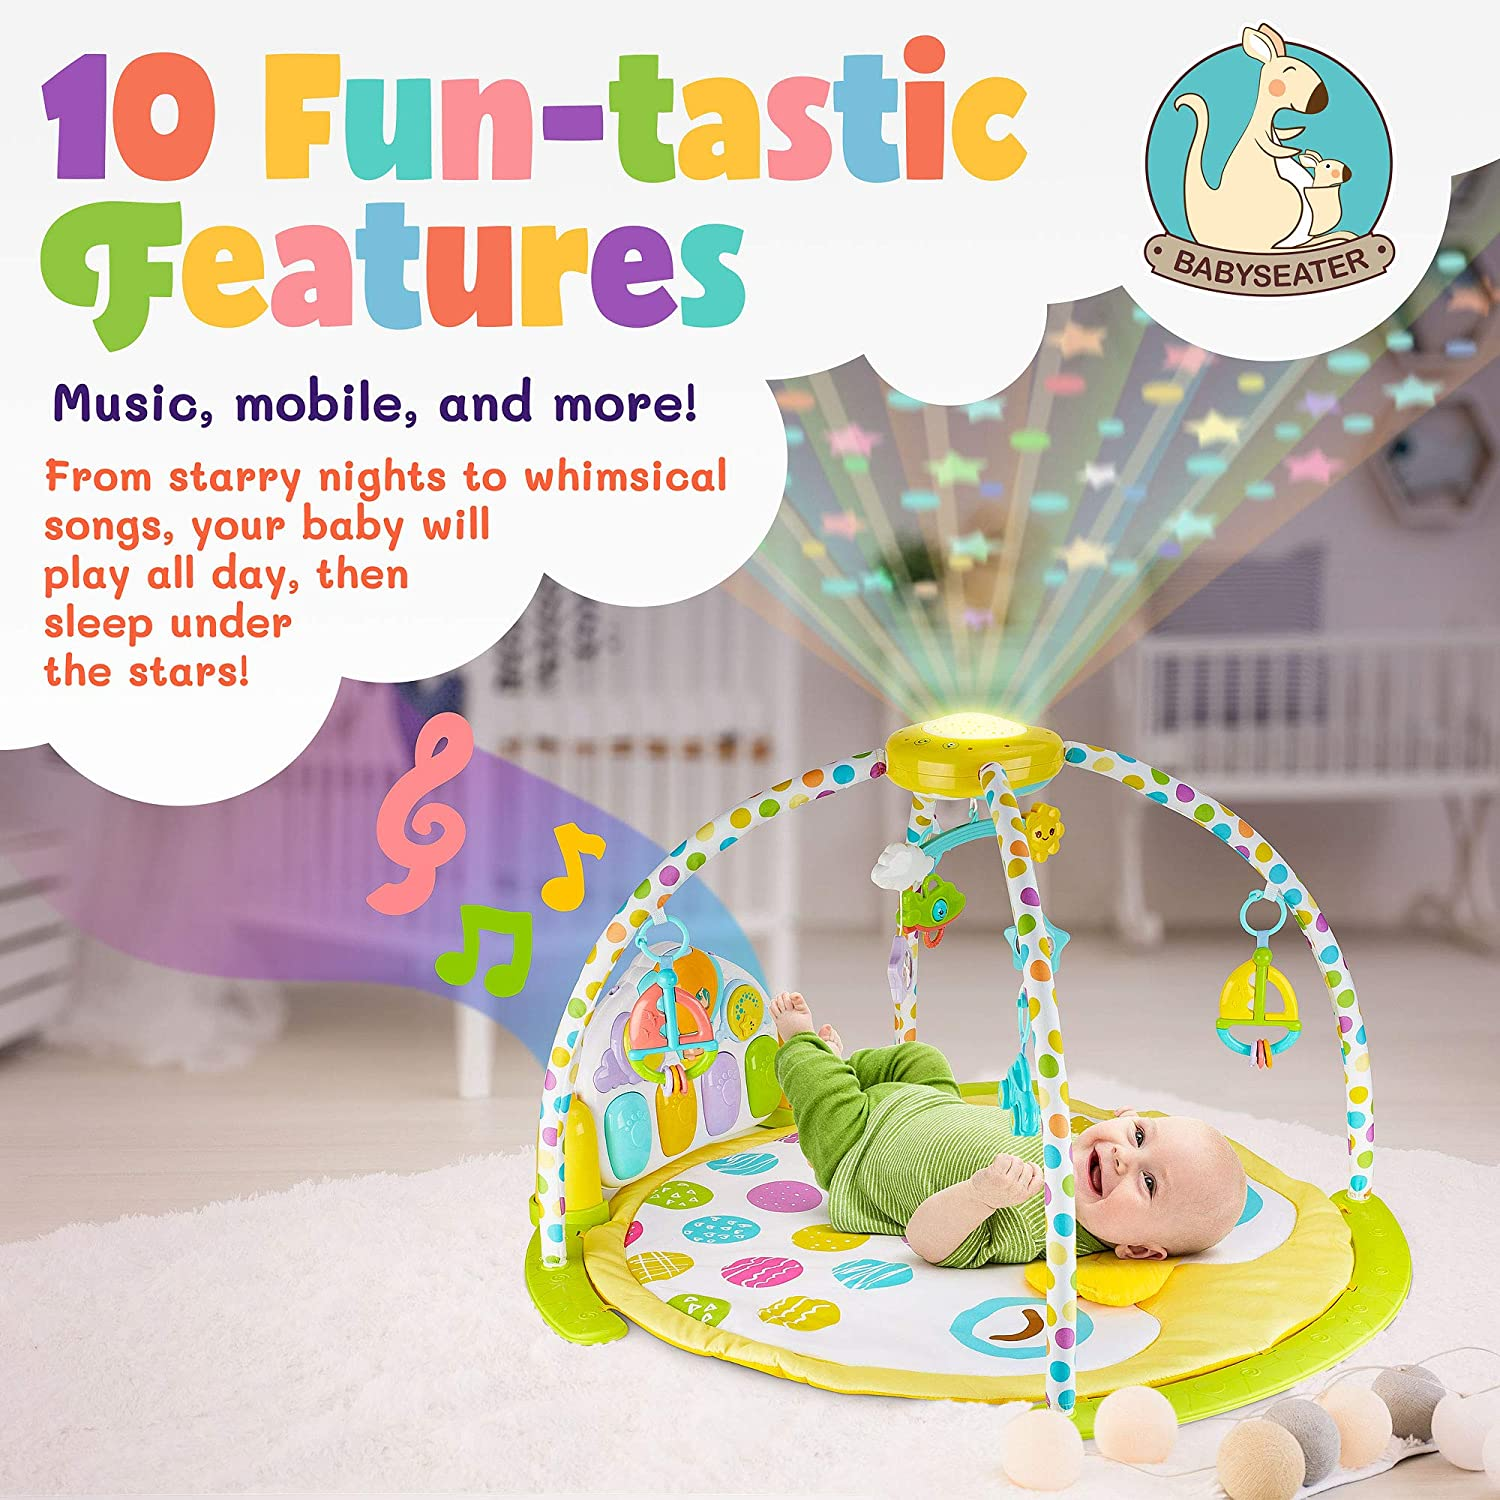 NEW 2019 Baby Gym Kick and Play Piano Activity 0m Large Play Learn Infant Toys Jungle Gym Baby Kick Piano Mat with Rotating Star Mobile Star Projector Machine Washable Newborn Toddler Gym